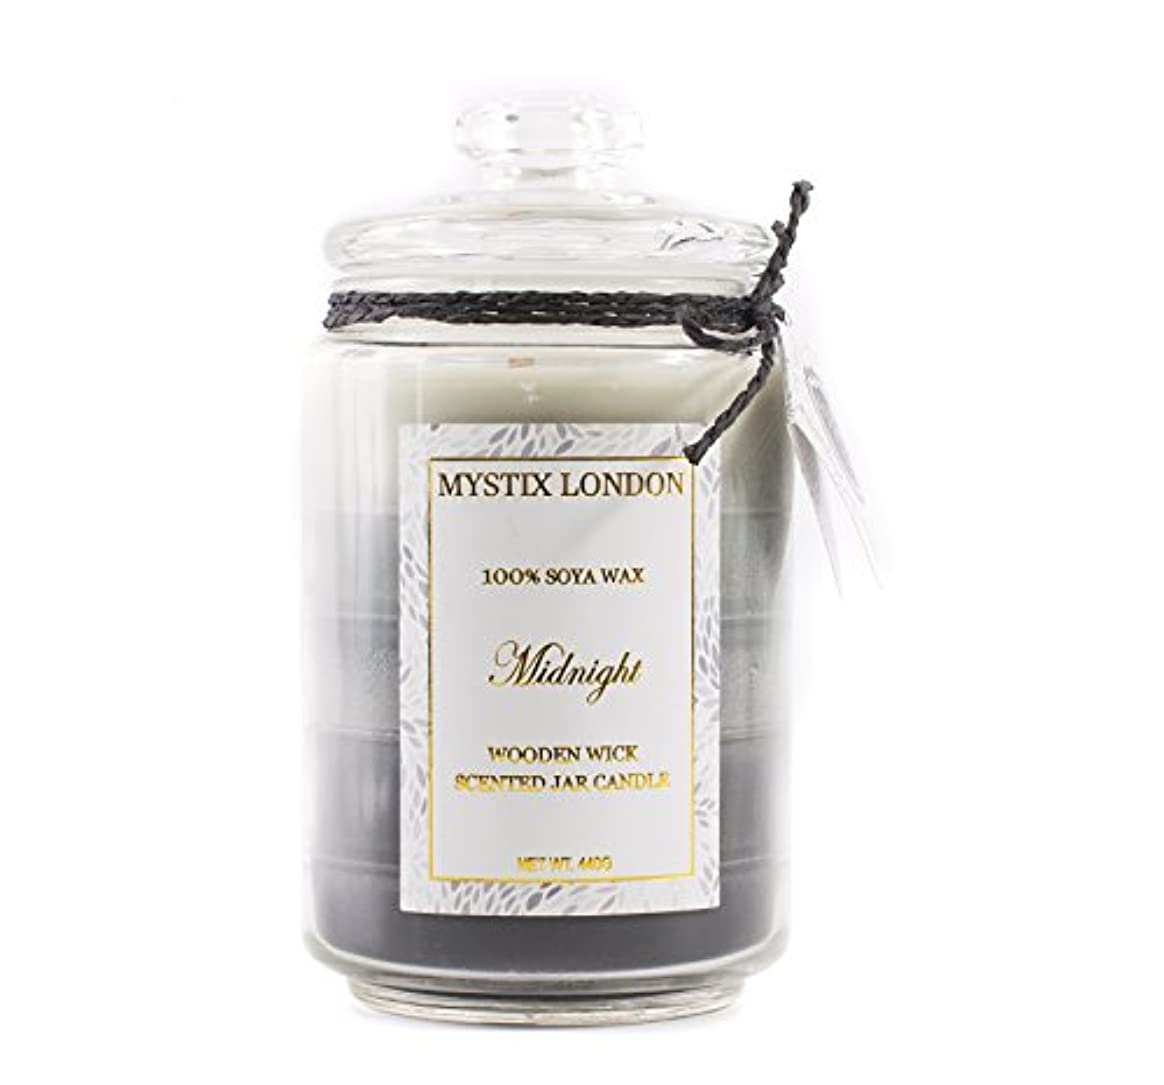 原稿ハンバーガー構成Mystix London Midnight Wooden Wick Scented Jar Candle 440g